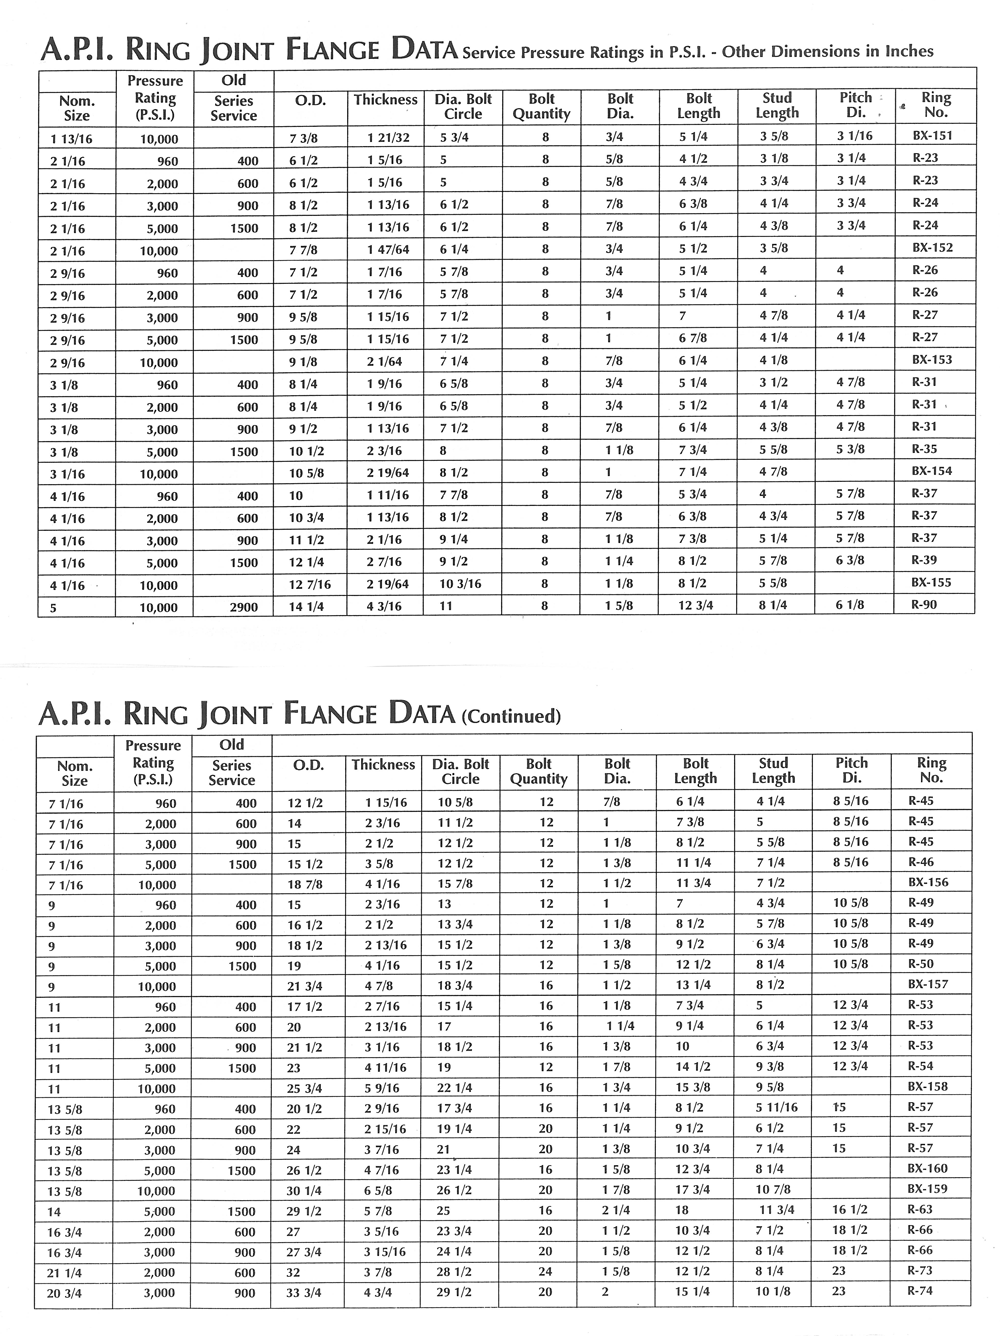 API Ring Joint Flange Data